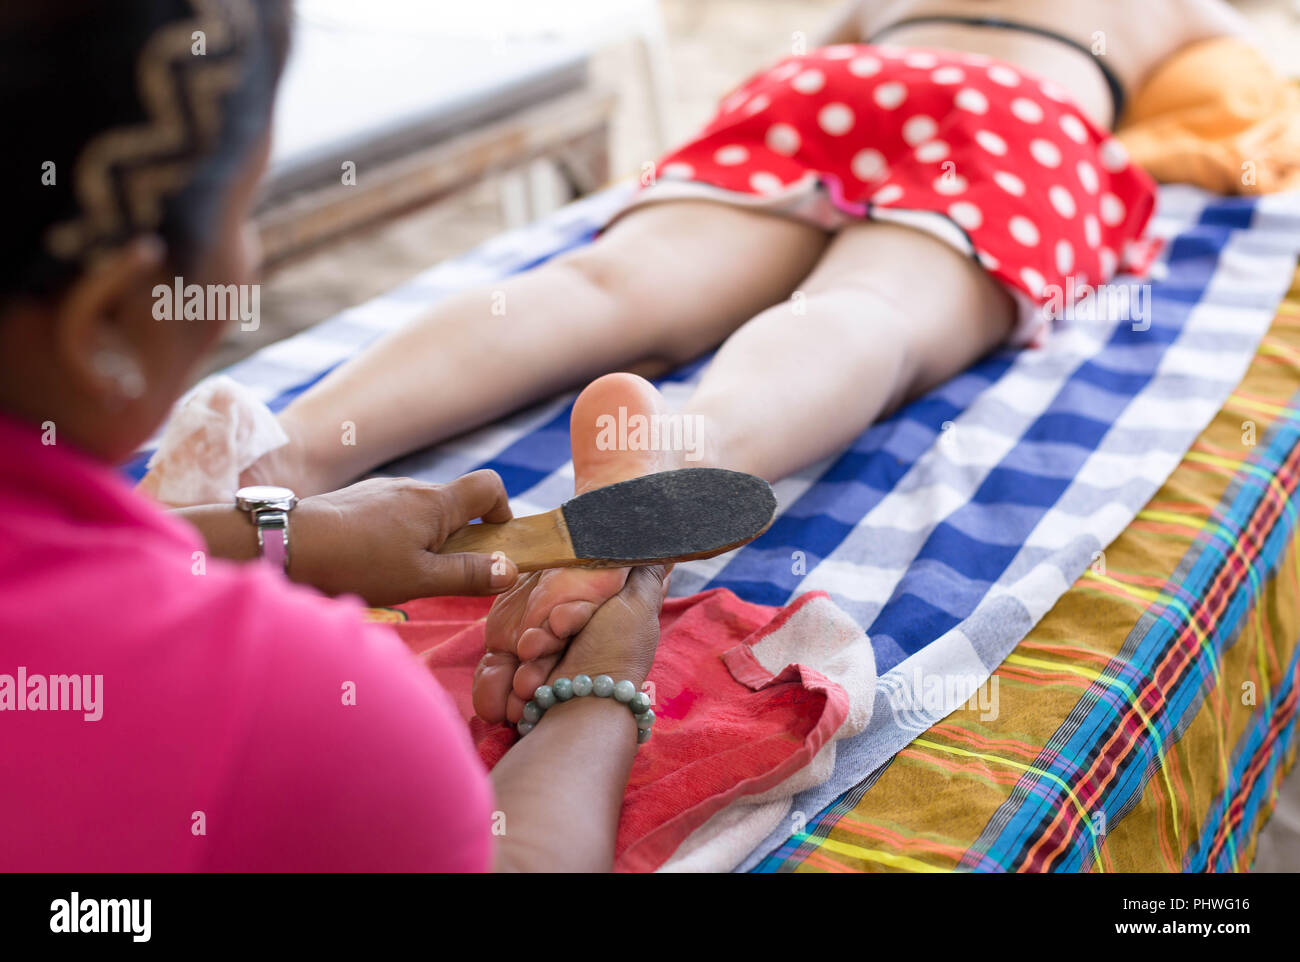 Woman having foot scrub on the beach - Stock Image